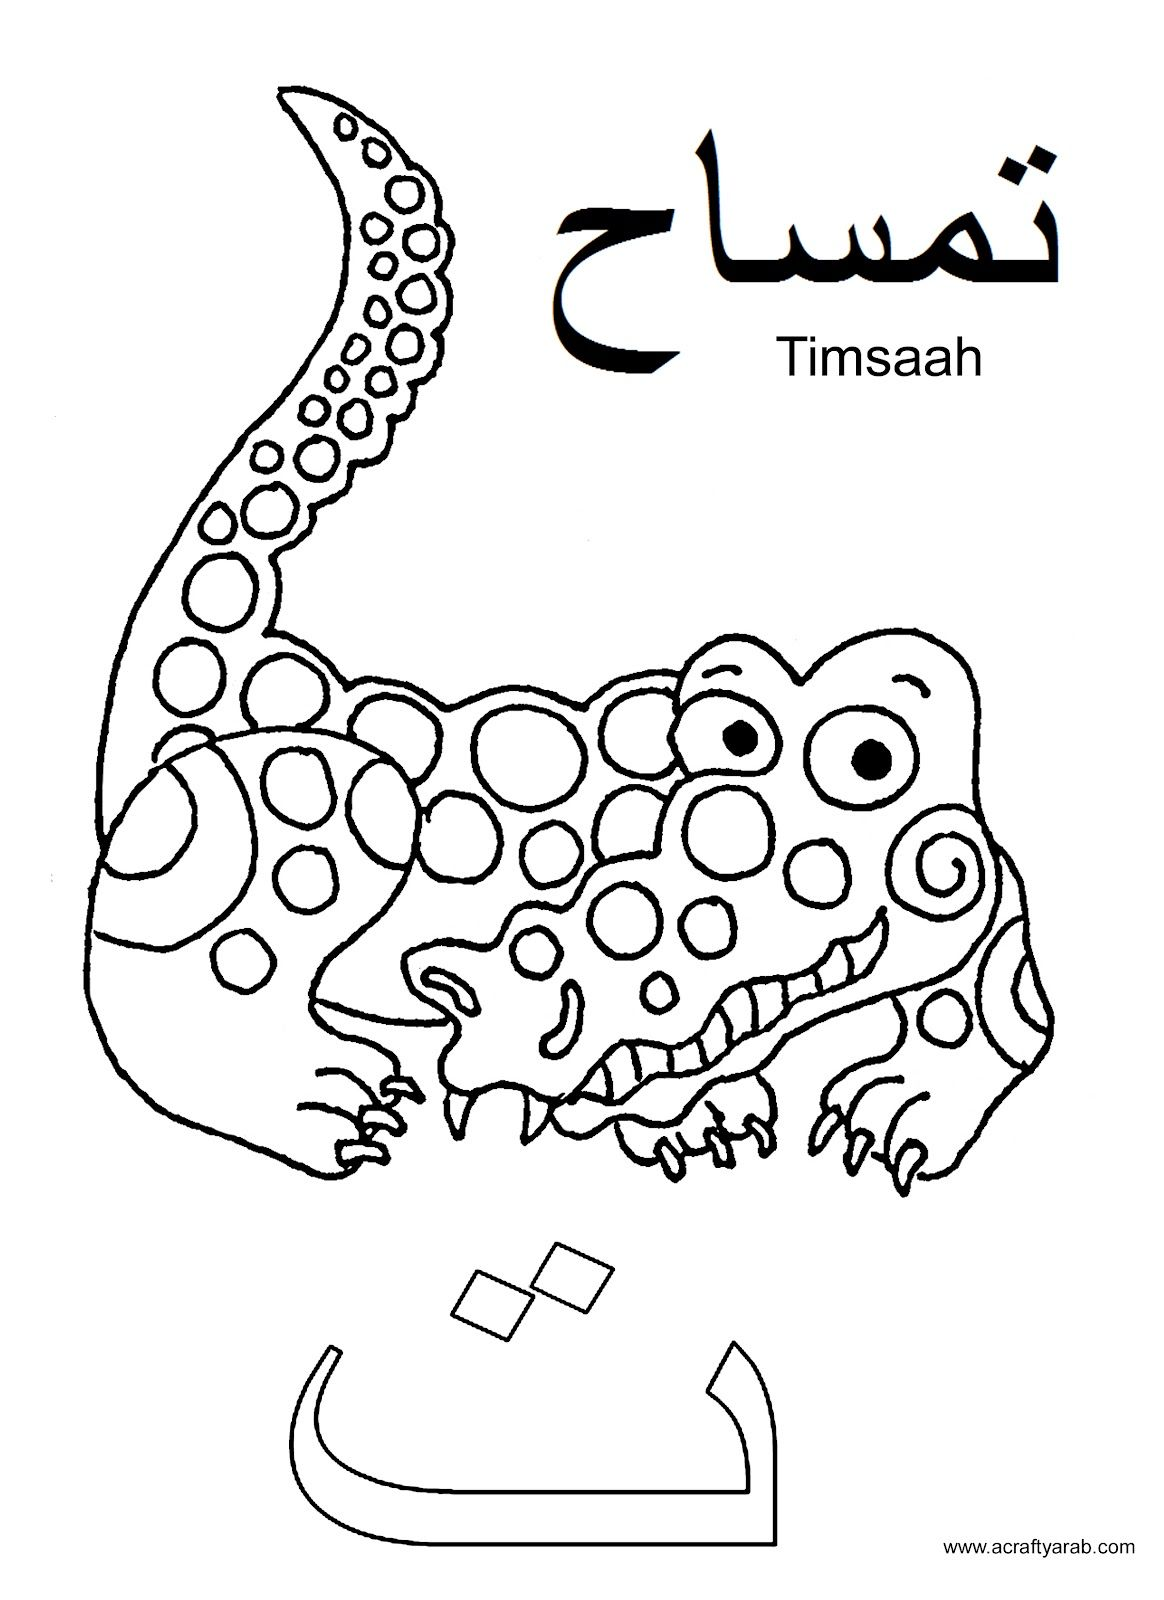 A Crafty Arab Arabic Alphabet Coloring Pages Ta Is For